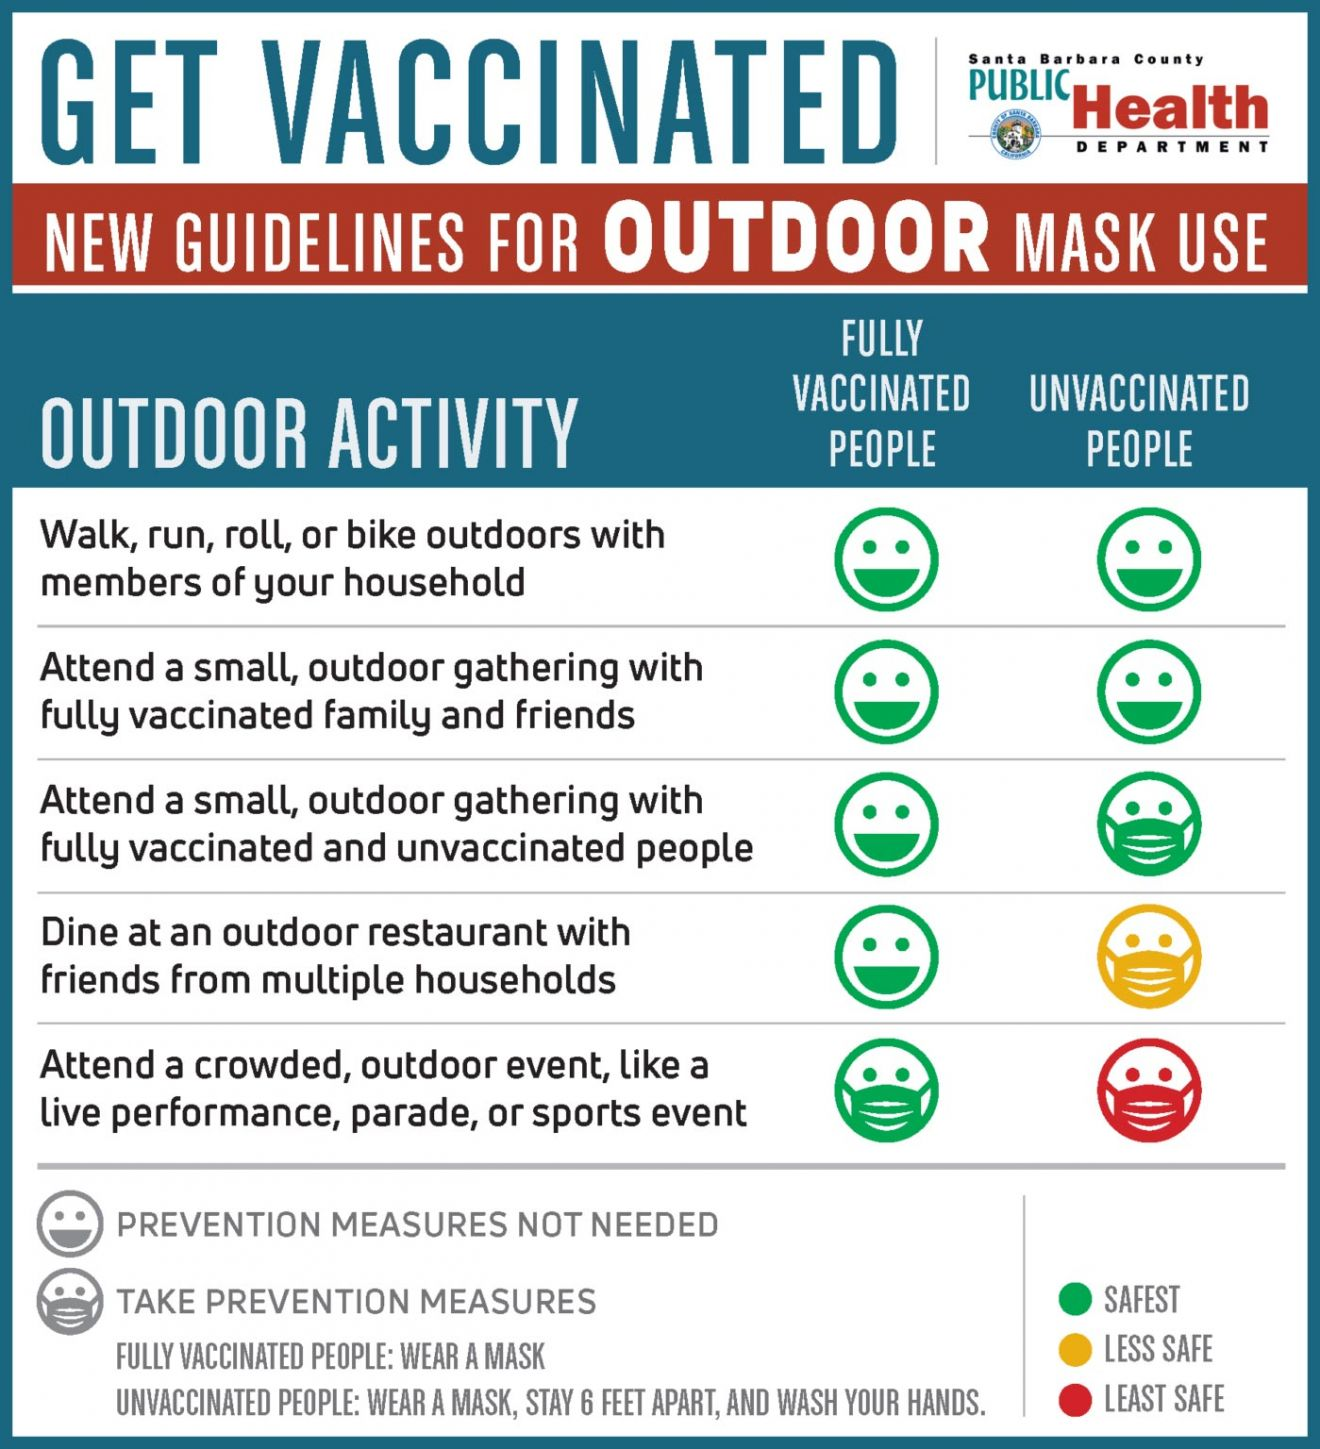 outdoor mask guidelines from Public Health